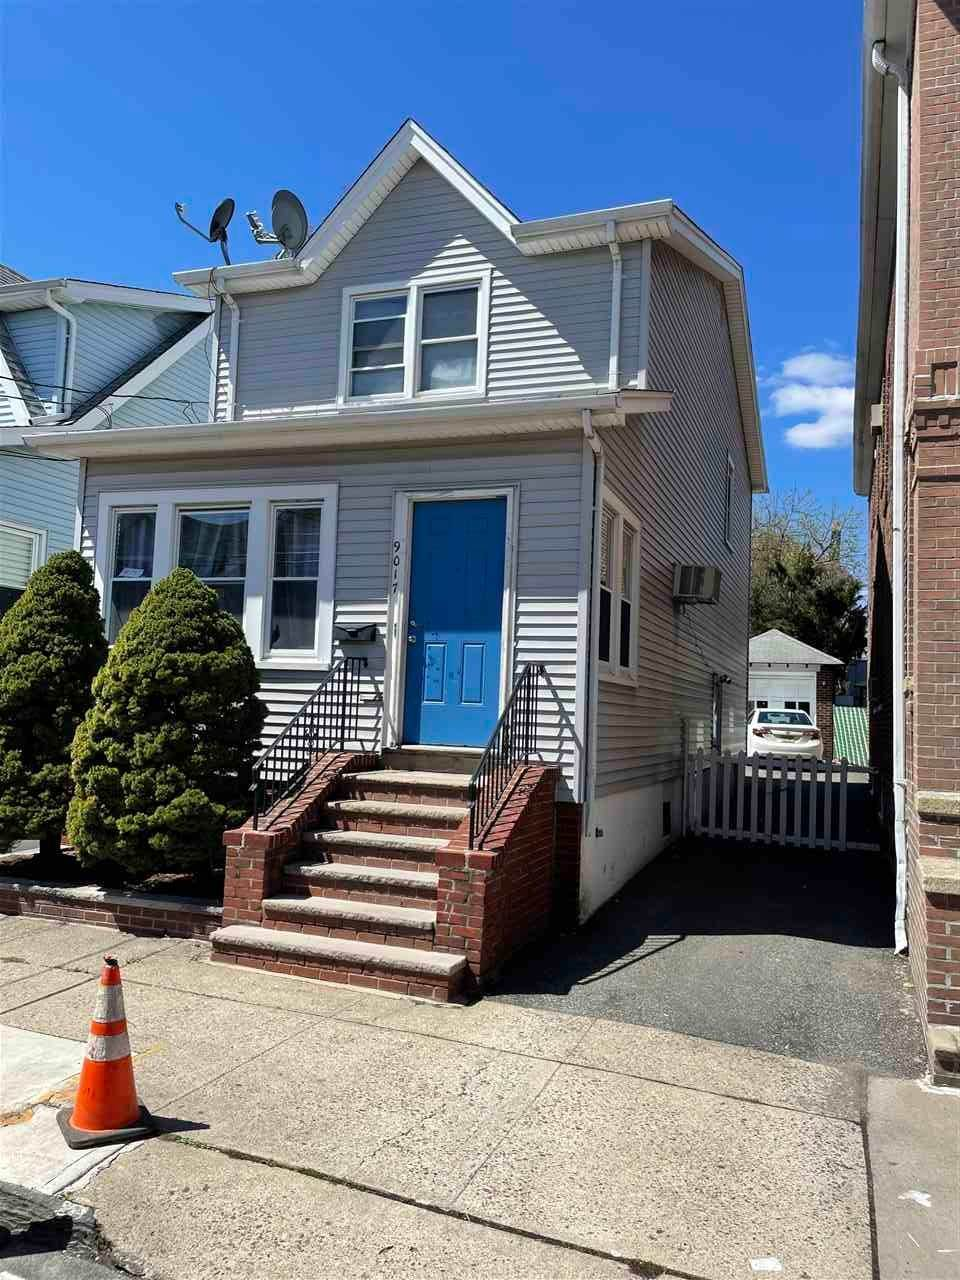 Single Family Home for Rent at 9017 2ND AVENUE North Bergen, New Jersey, 07047 United States